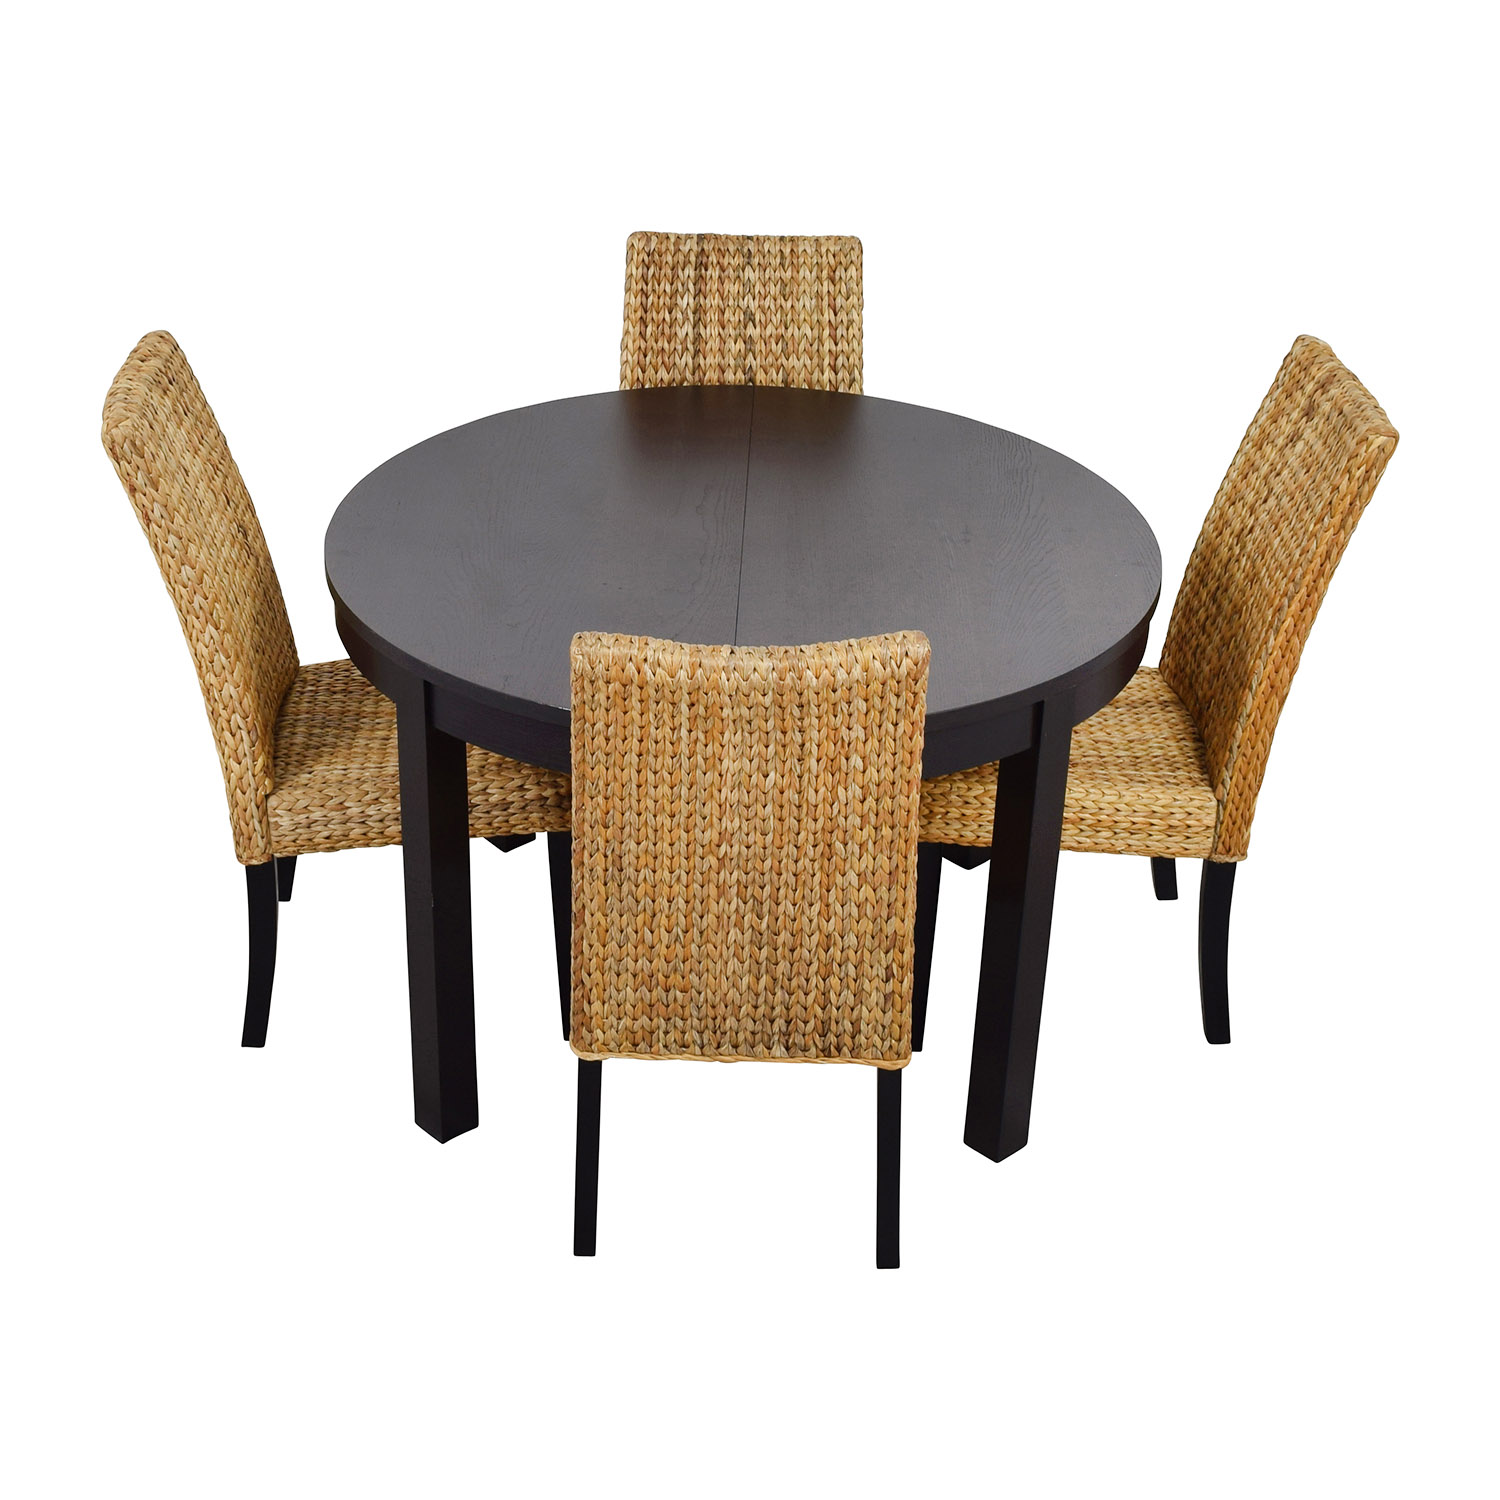 66 OFF Macys amp IKEA Round Black Dining Table Set with  : round black dining table set with four chairs used from www.furnishare.com size 1500 x 1500 jpeg 282kB